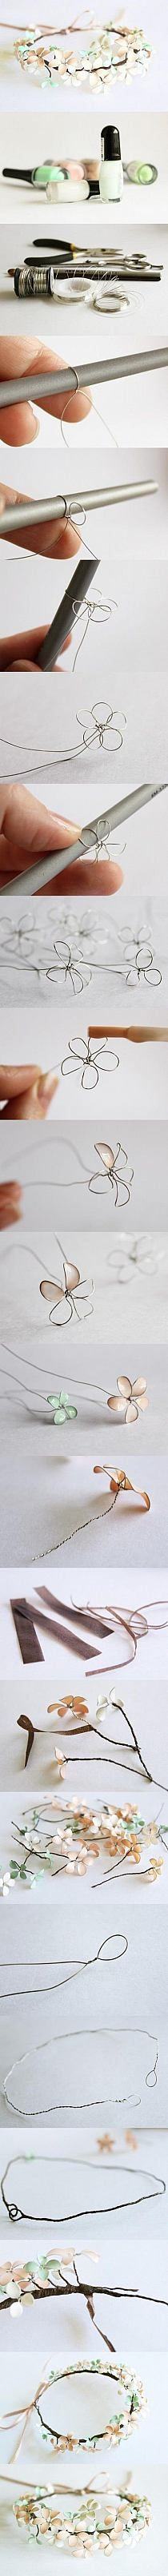 flowers made from thin wire and nail polish   She's cra…